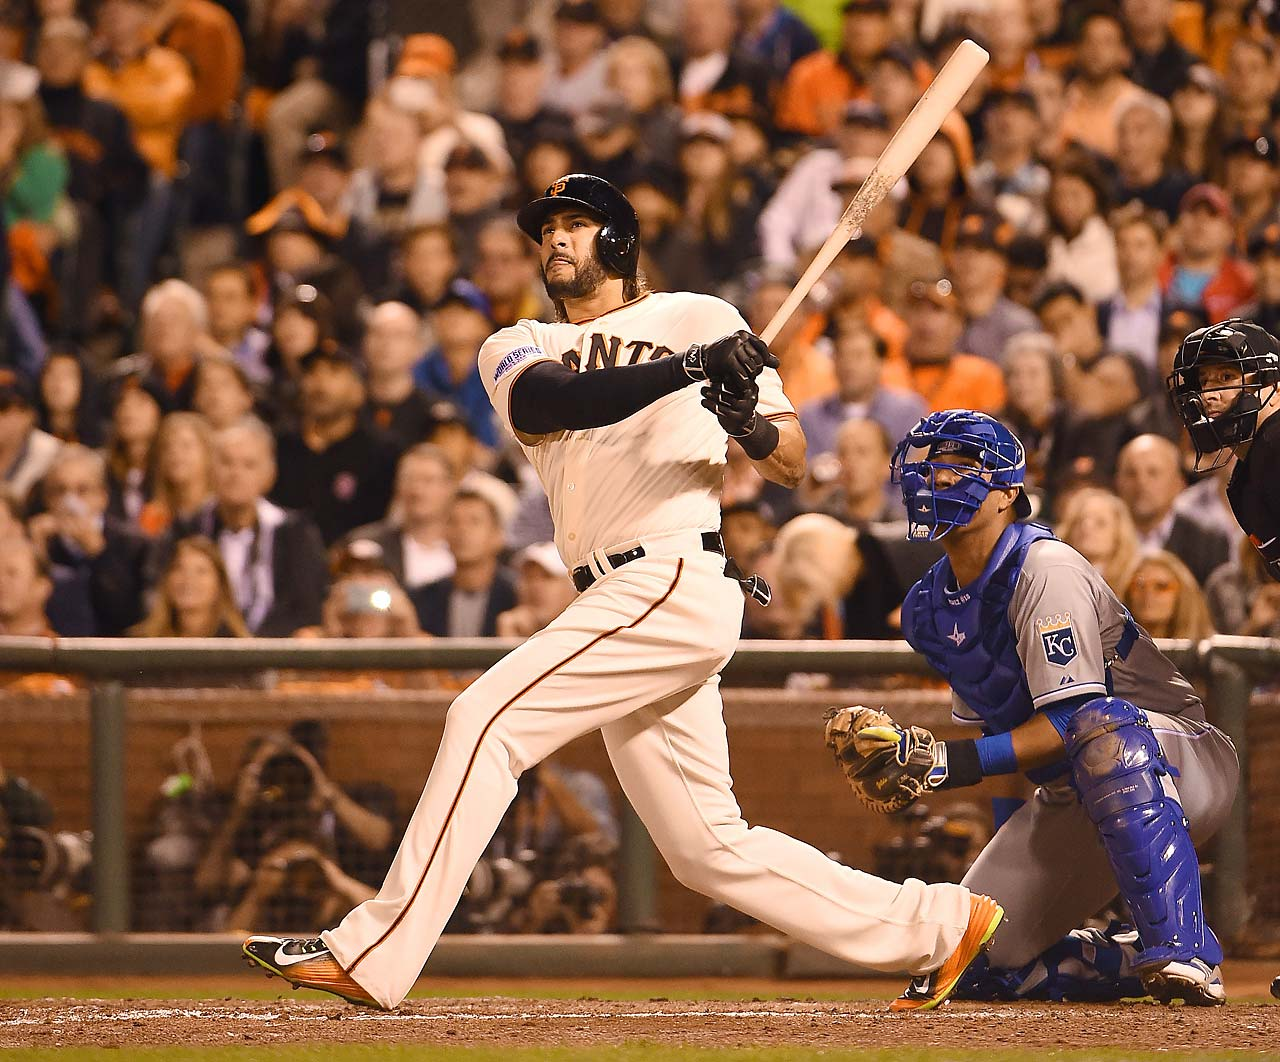 Pinch-hitting in the sixth inning, Michael Morse smashed a ball long enough to be a homer but it went foul.